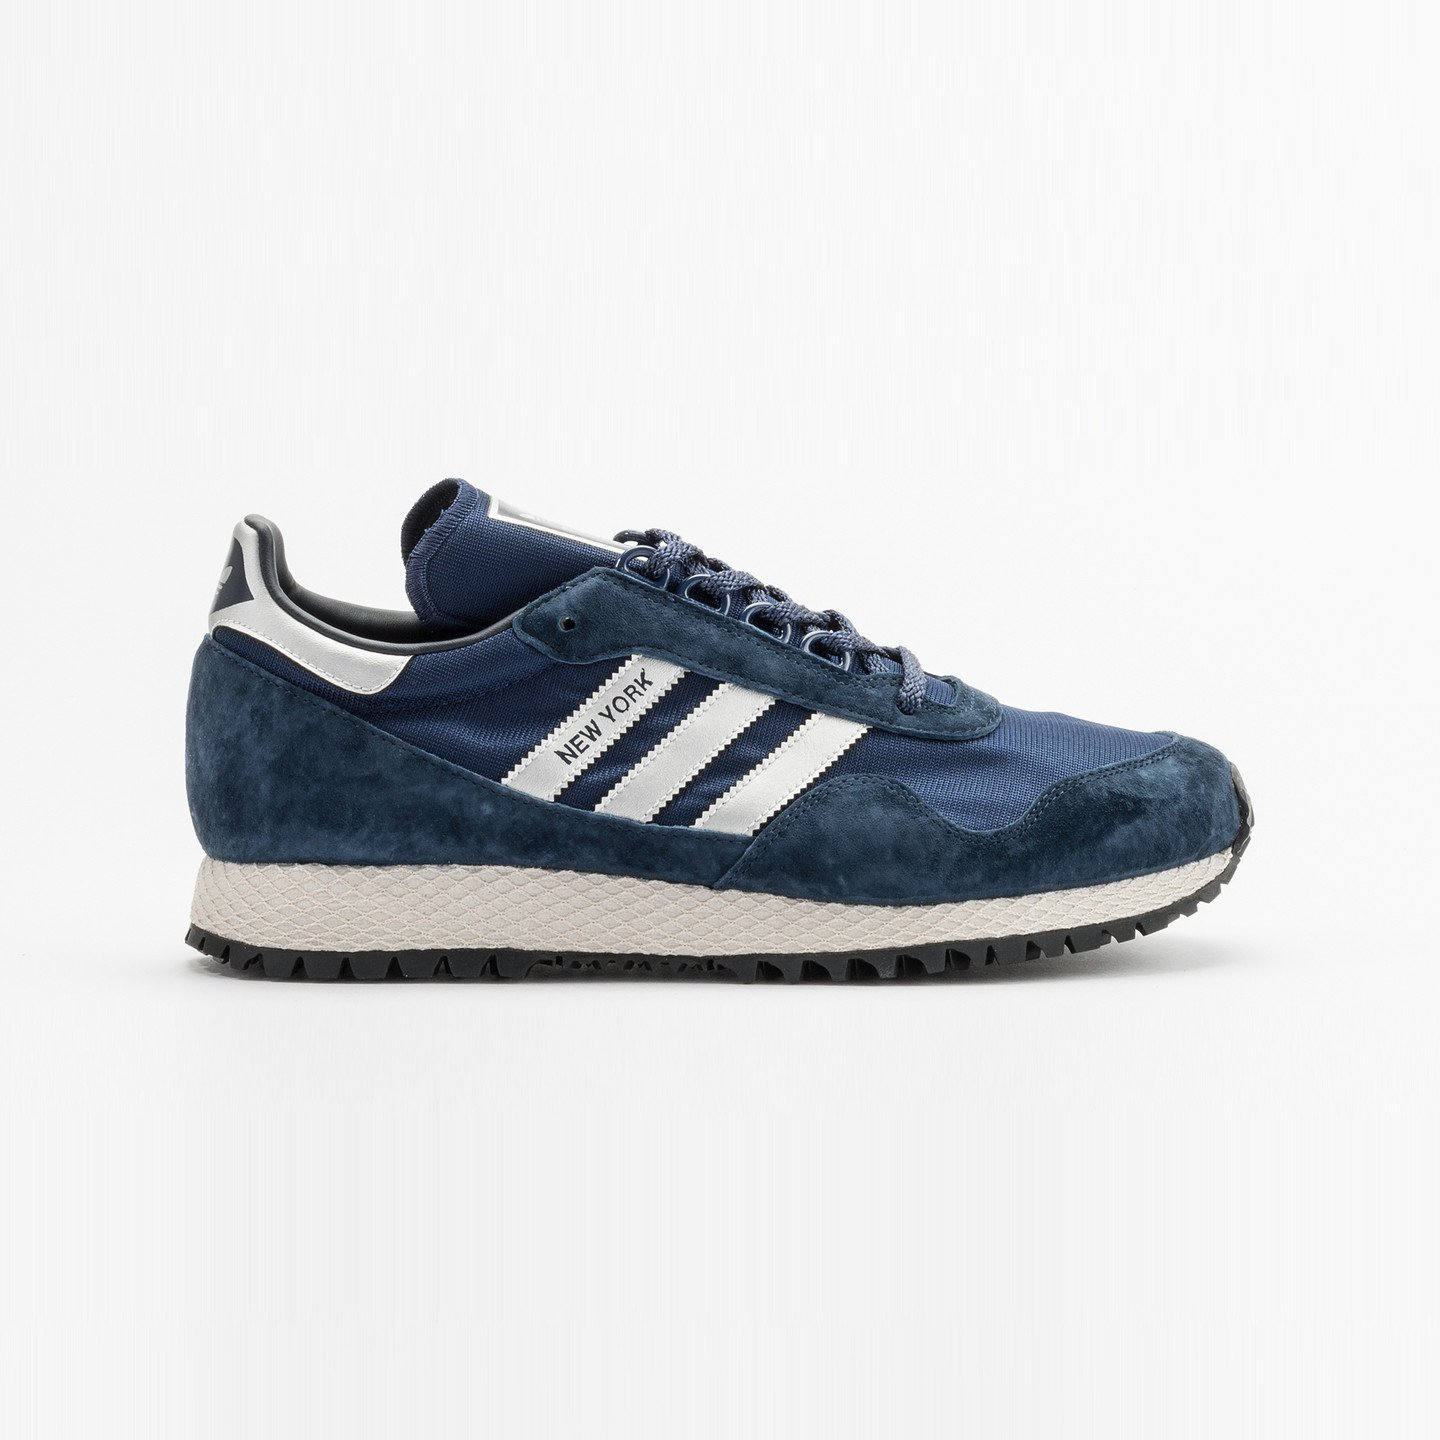 Adidas New York Collegiate Navy / Metallic Silver BB1188-43.33